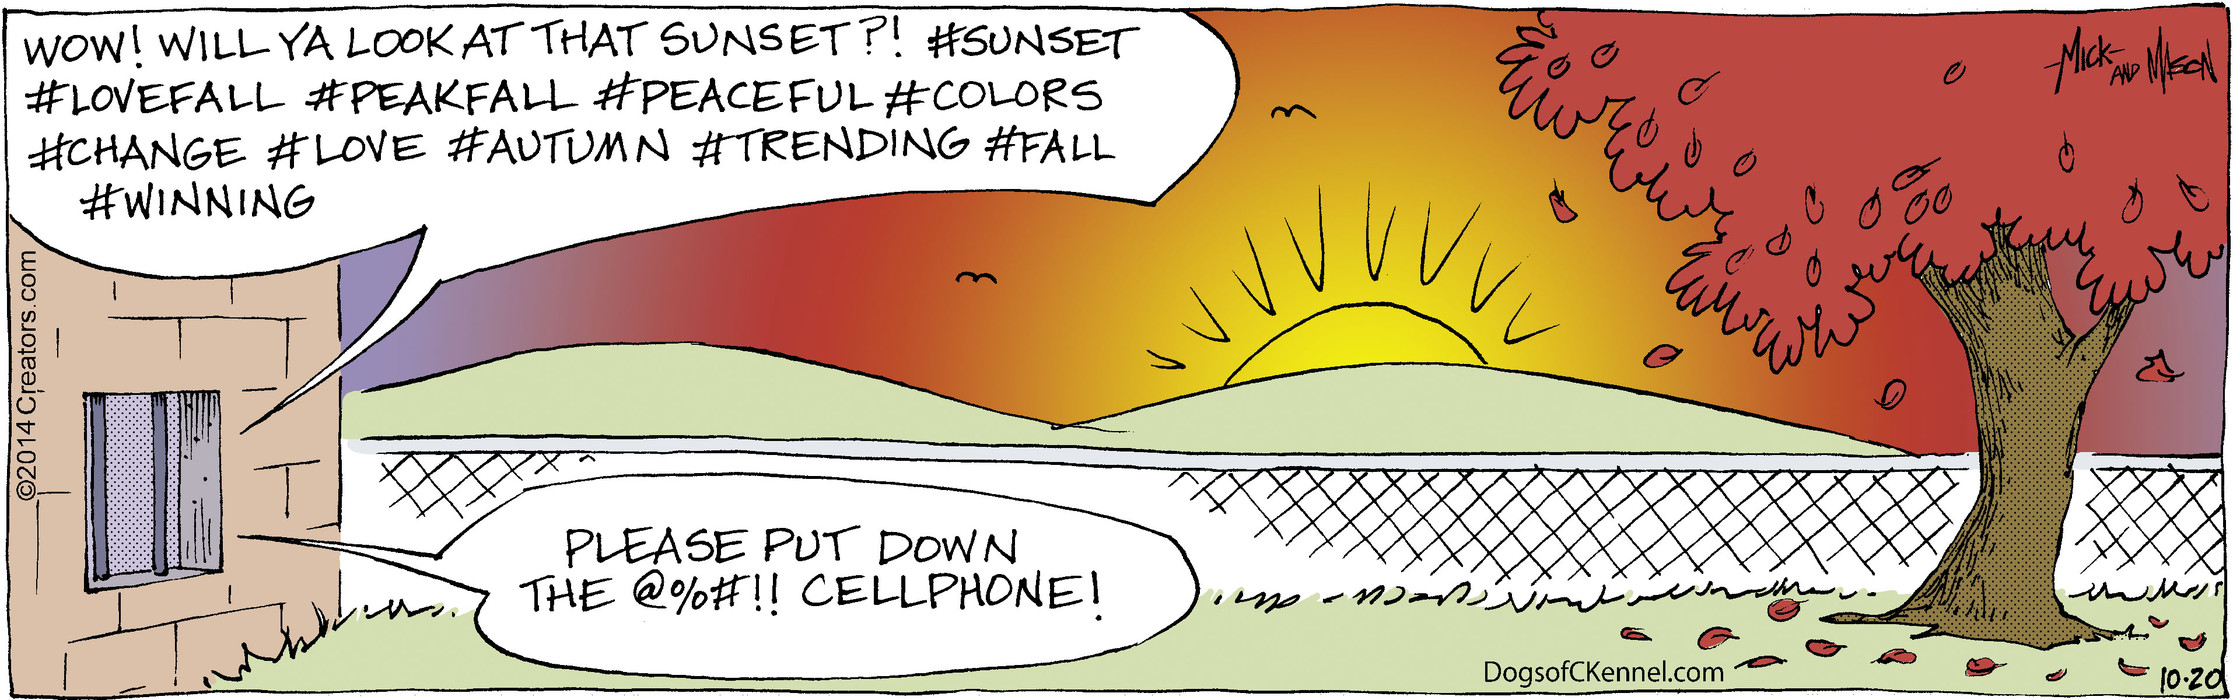 Dogs of C-Kennel for Oct 20, 2014